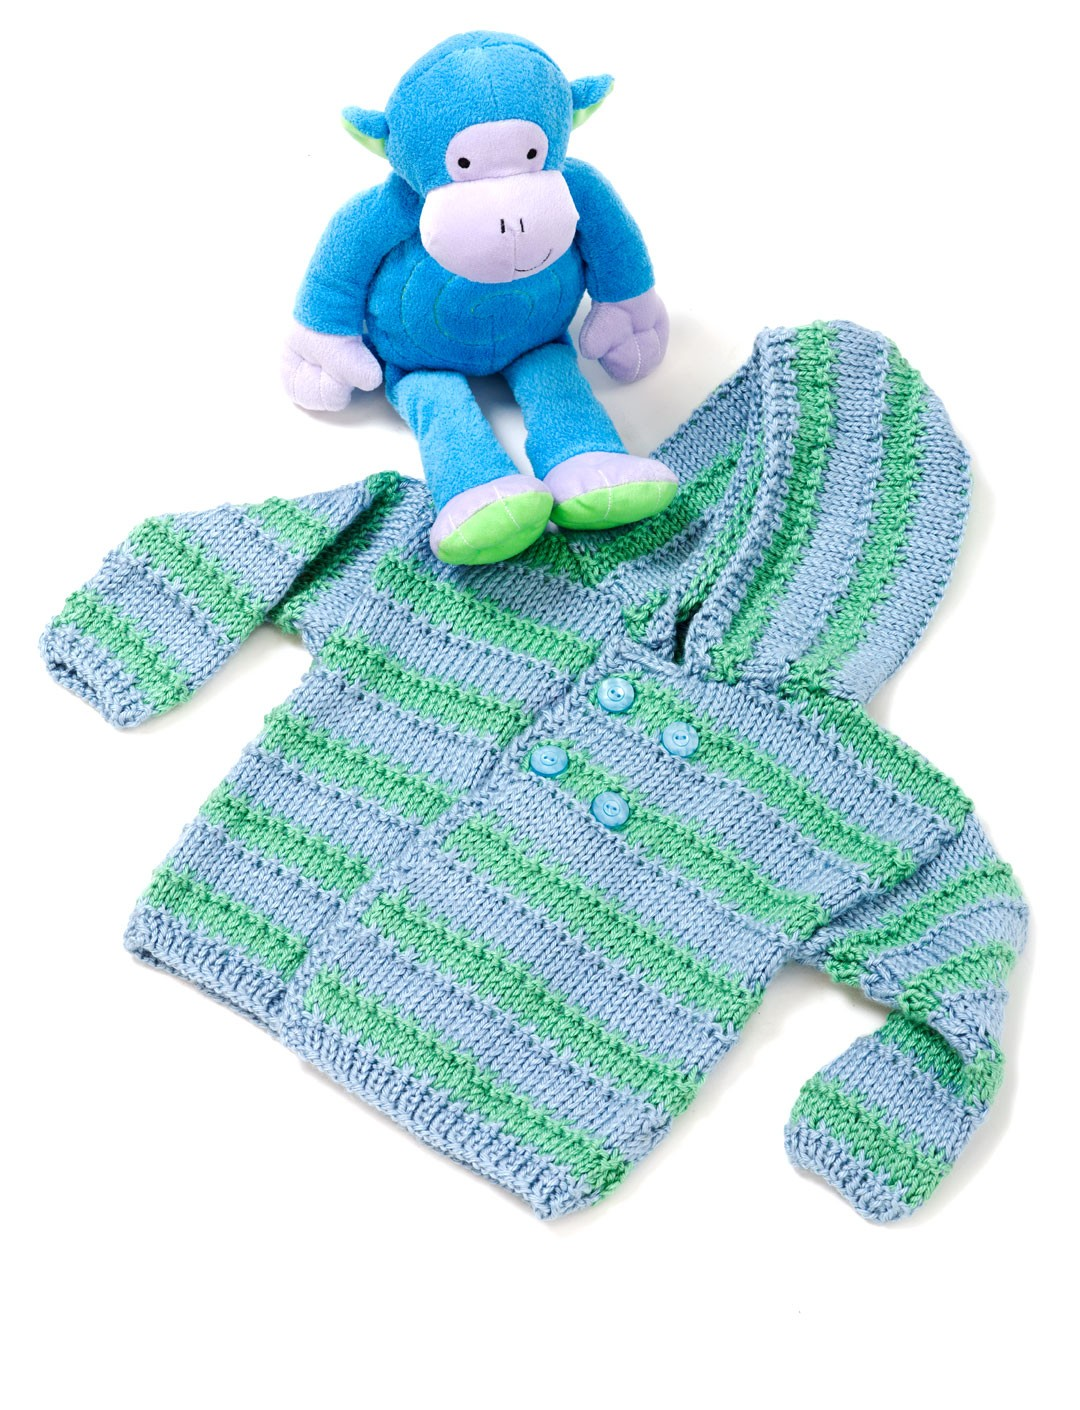 Caron Baby Boy Hooded Sweater, Knit Pattern Yarnspirations